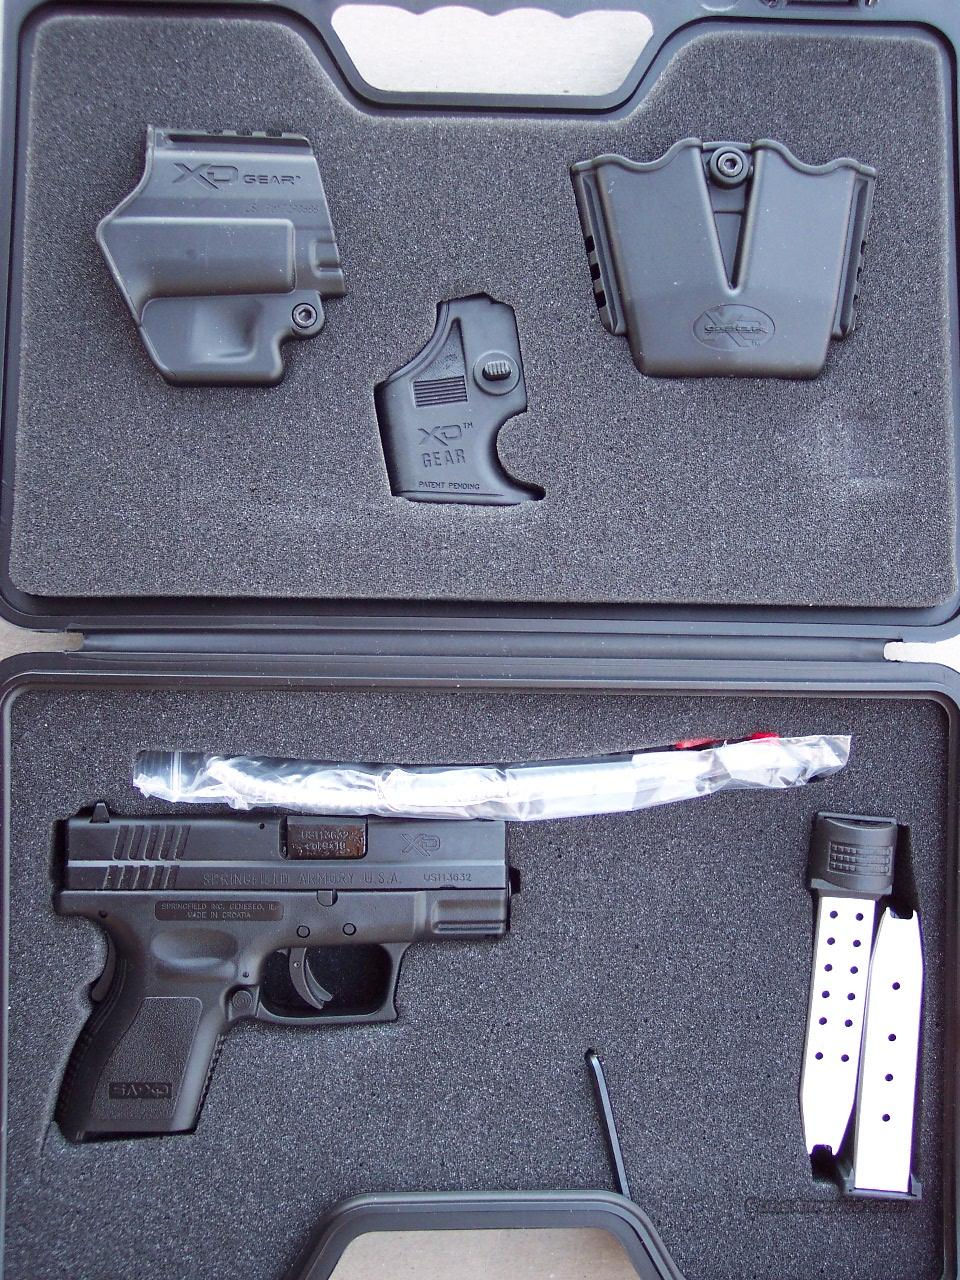 Springfield XD 9 mm Sub Compact Gear pack NEW   Guns > Pistols > Springfield Armory Pistols > XD (eXtreme Duty)